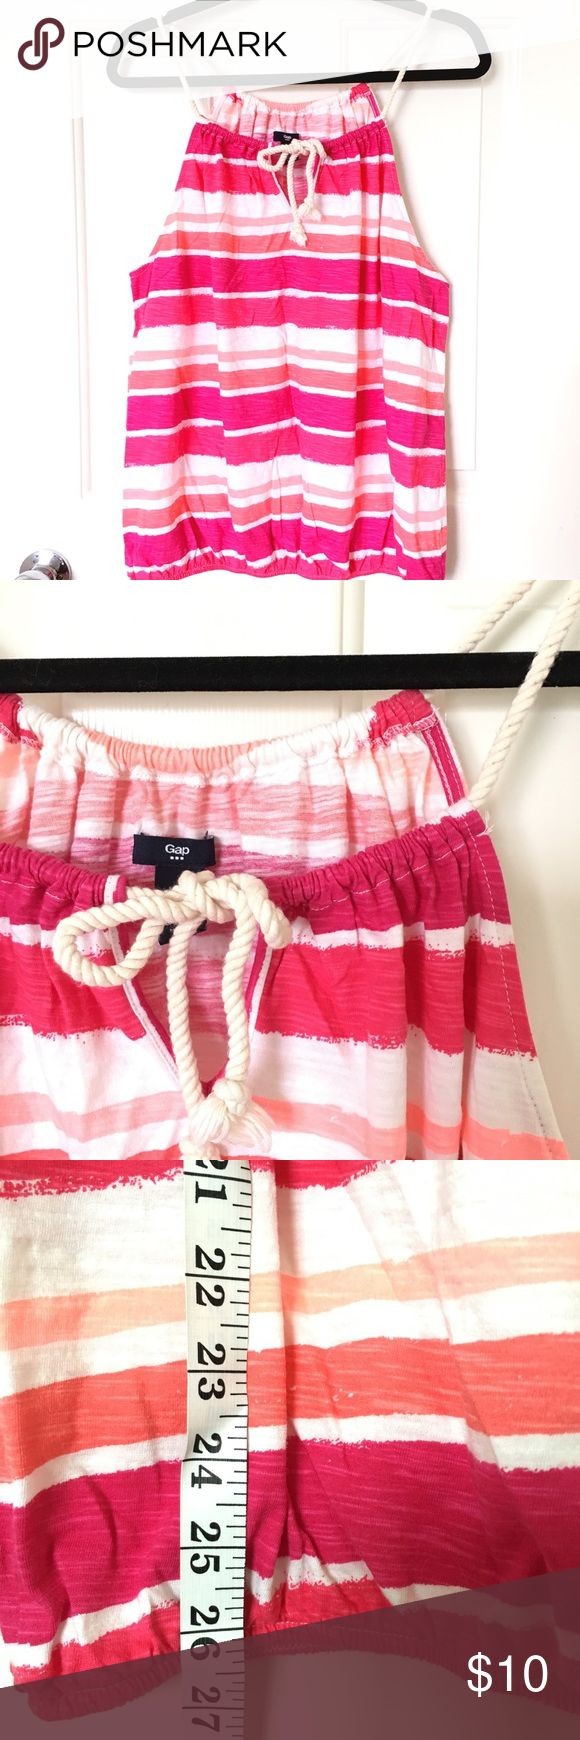 🎉 SALE Gap pink white stripe halter top rope bow This striped halter type tank top has hot pink, coral, and white stripes. It features a rope neck detail that ties in front. The bottom has elastic that creates a billowing effect. Fits large. Gap Tops Tank Tops